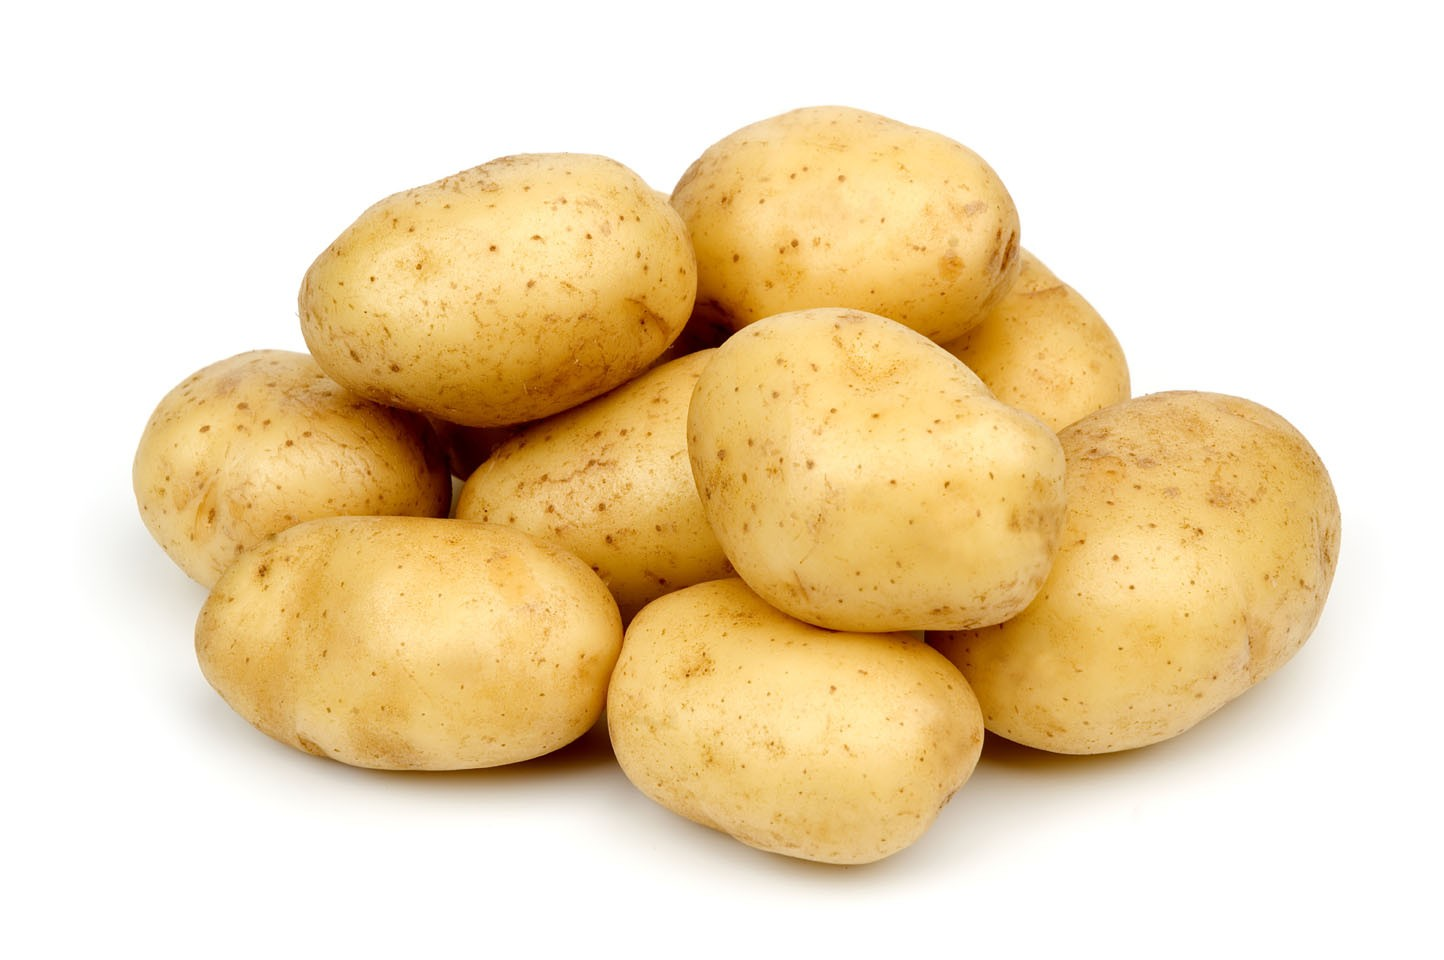 Pile of Potato Picture 147.42 Kb